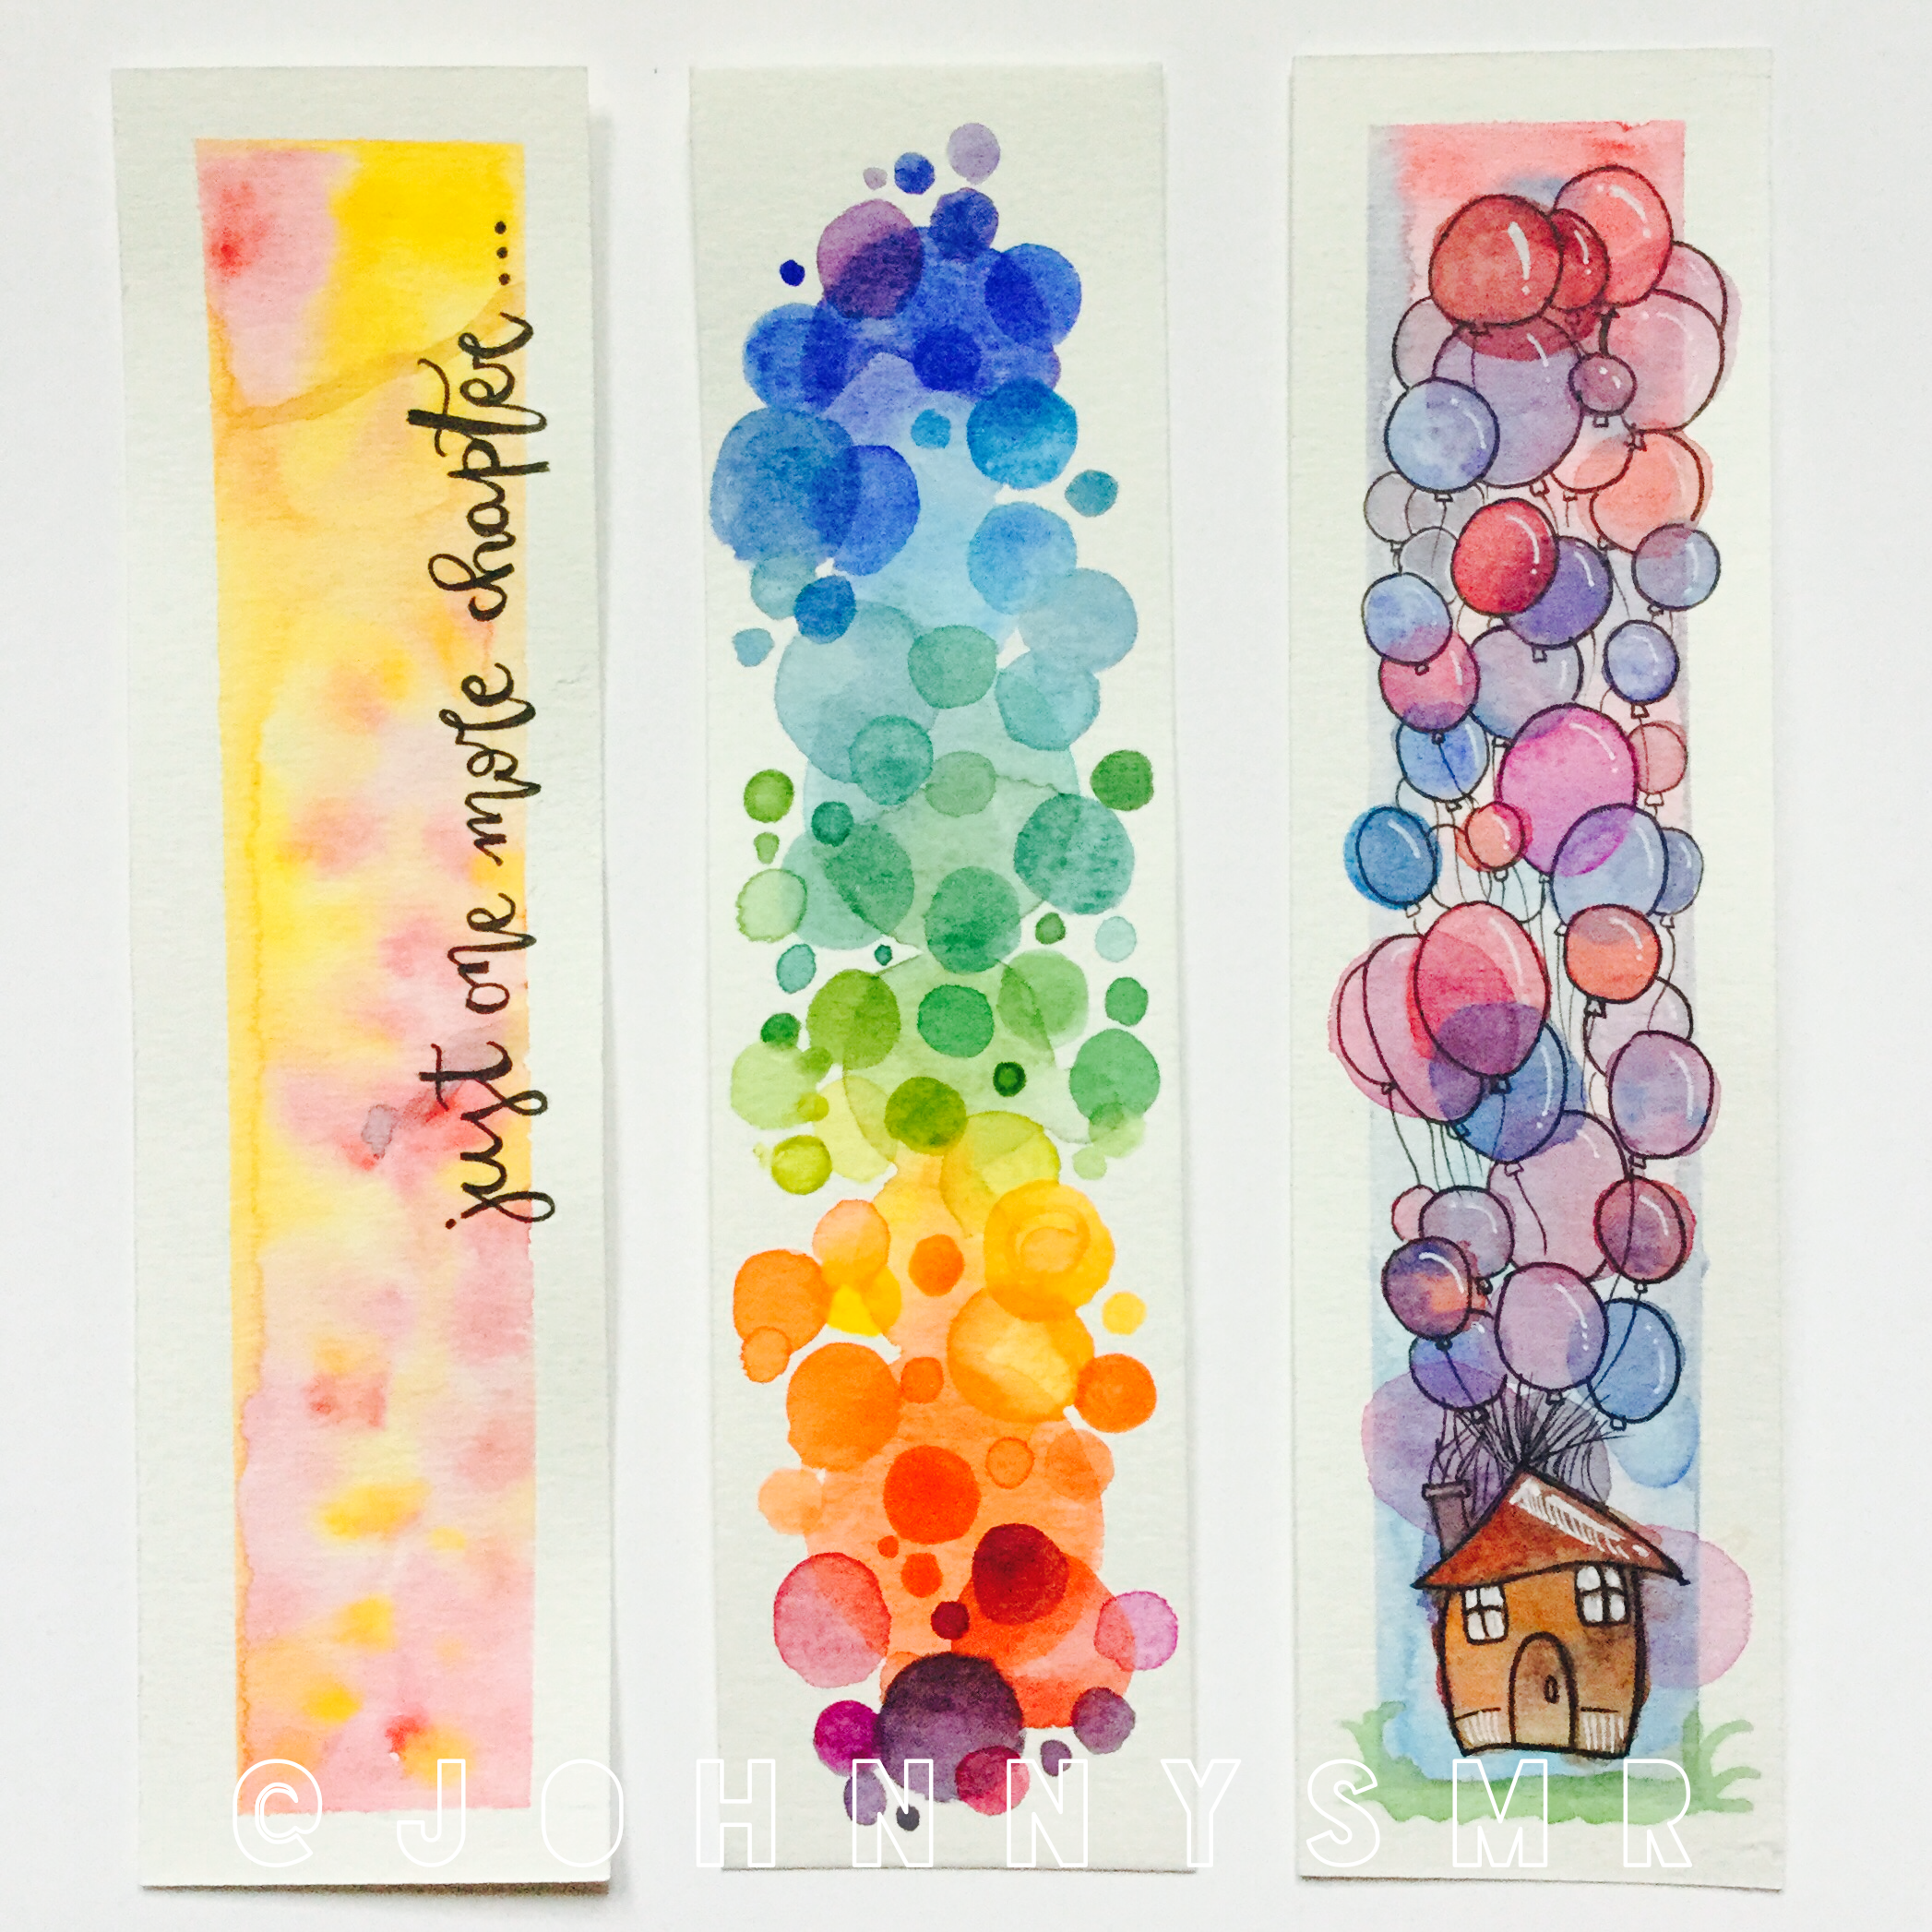 Watercolour Bookmarks Creative Bookmarks Watercolor Bookmarks Bookmarks Handmade